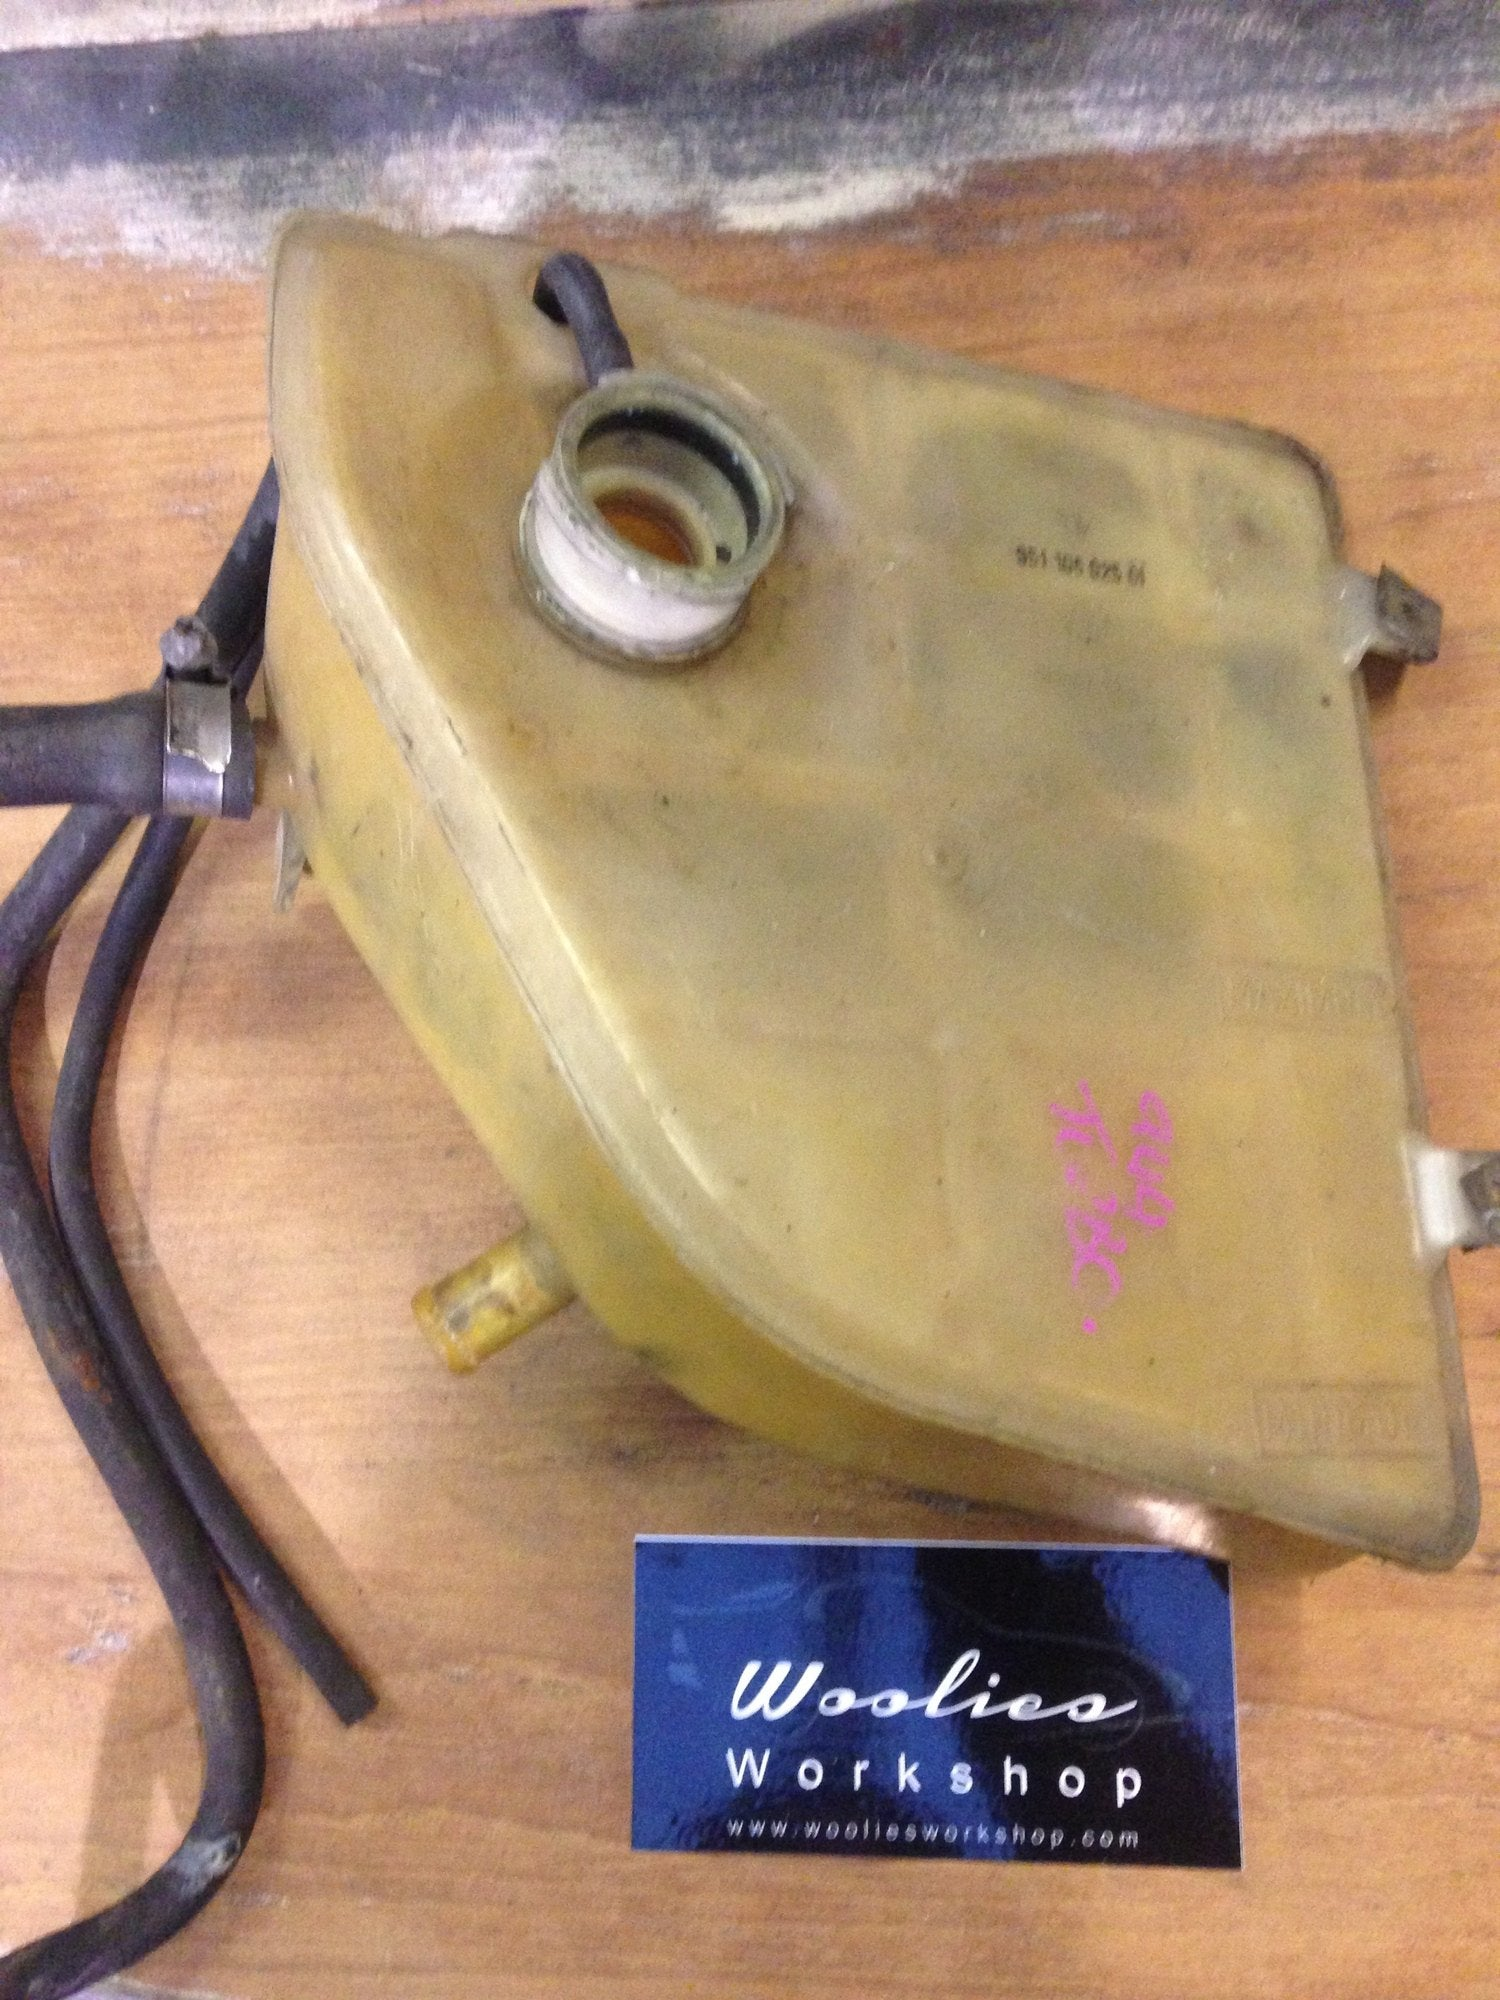 Porsche 944 turbo expansion tank, coolant tank, 951.106.025.01 - Woolies Workshop - Porsche 924 944 spares